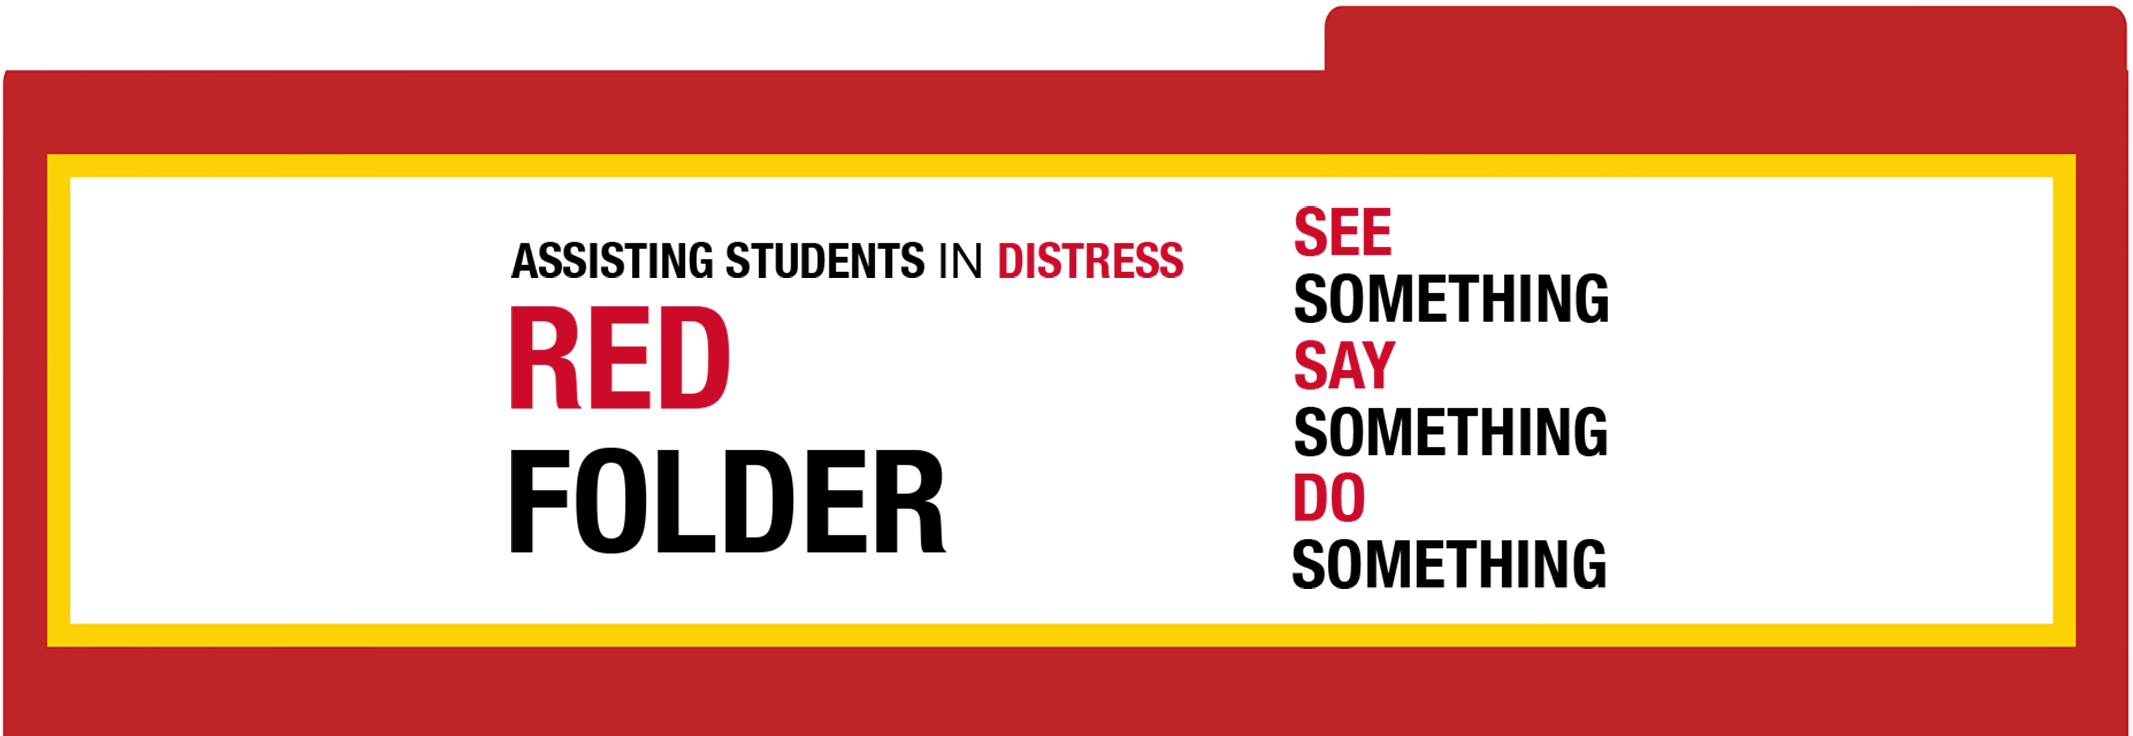 Assisting Students in Distress Red Folder: See Something. Say Something. Do Something.